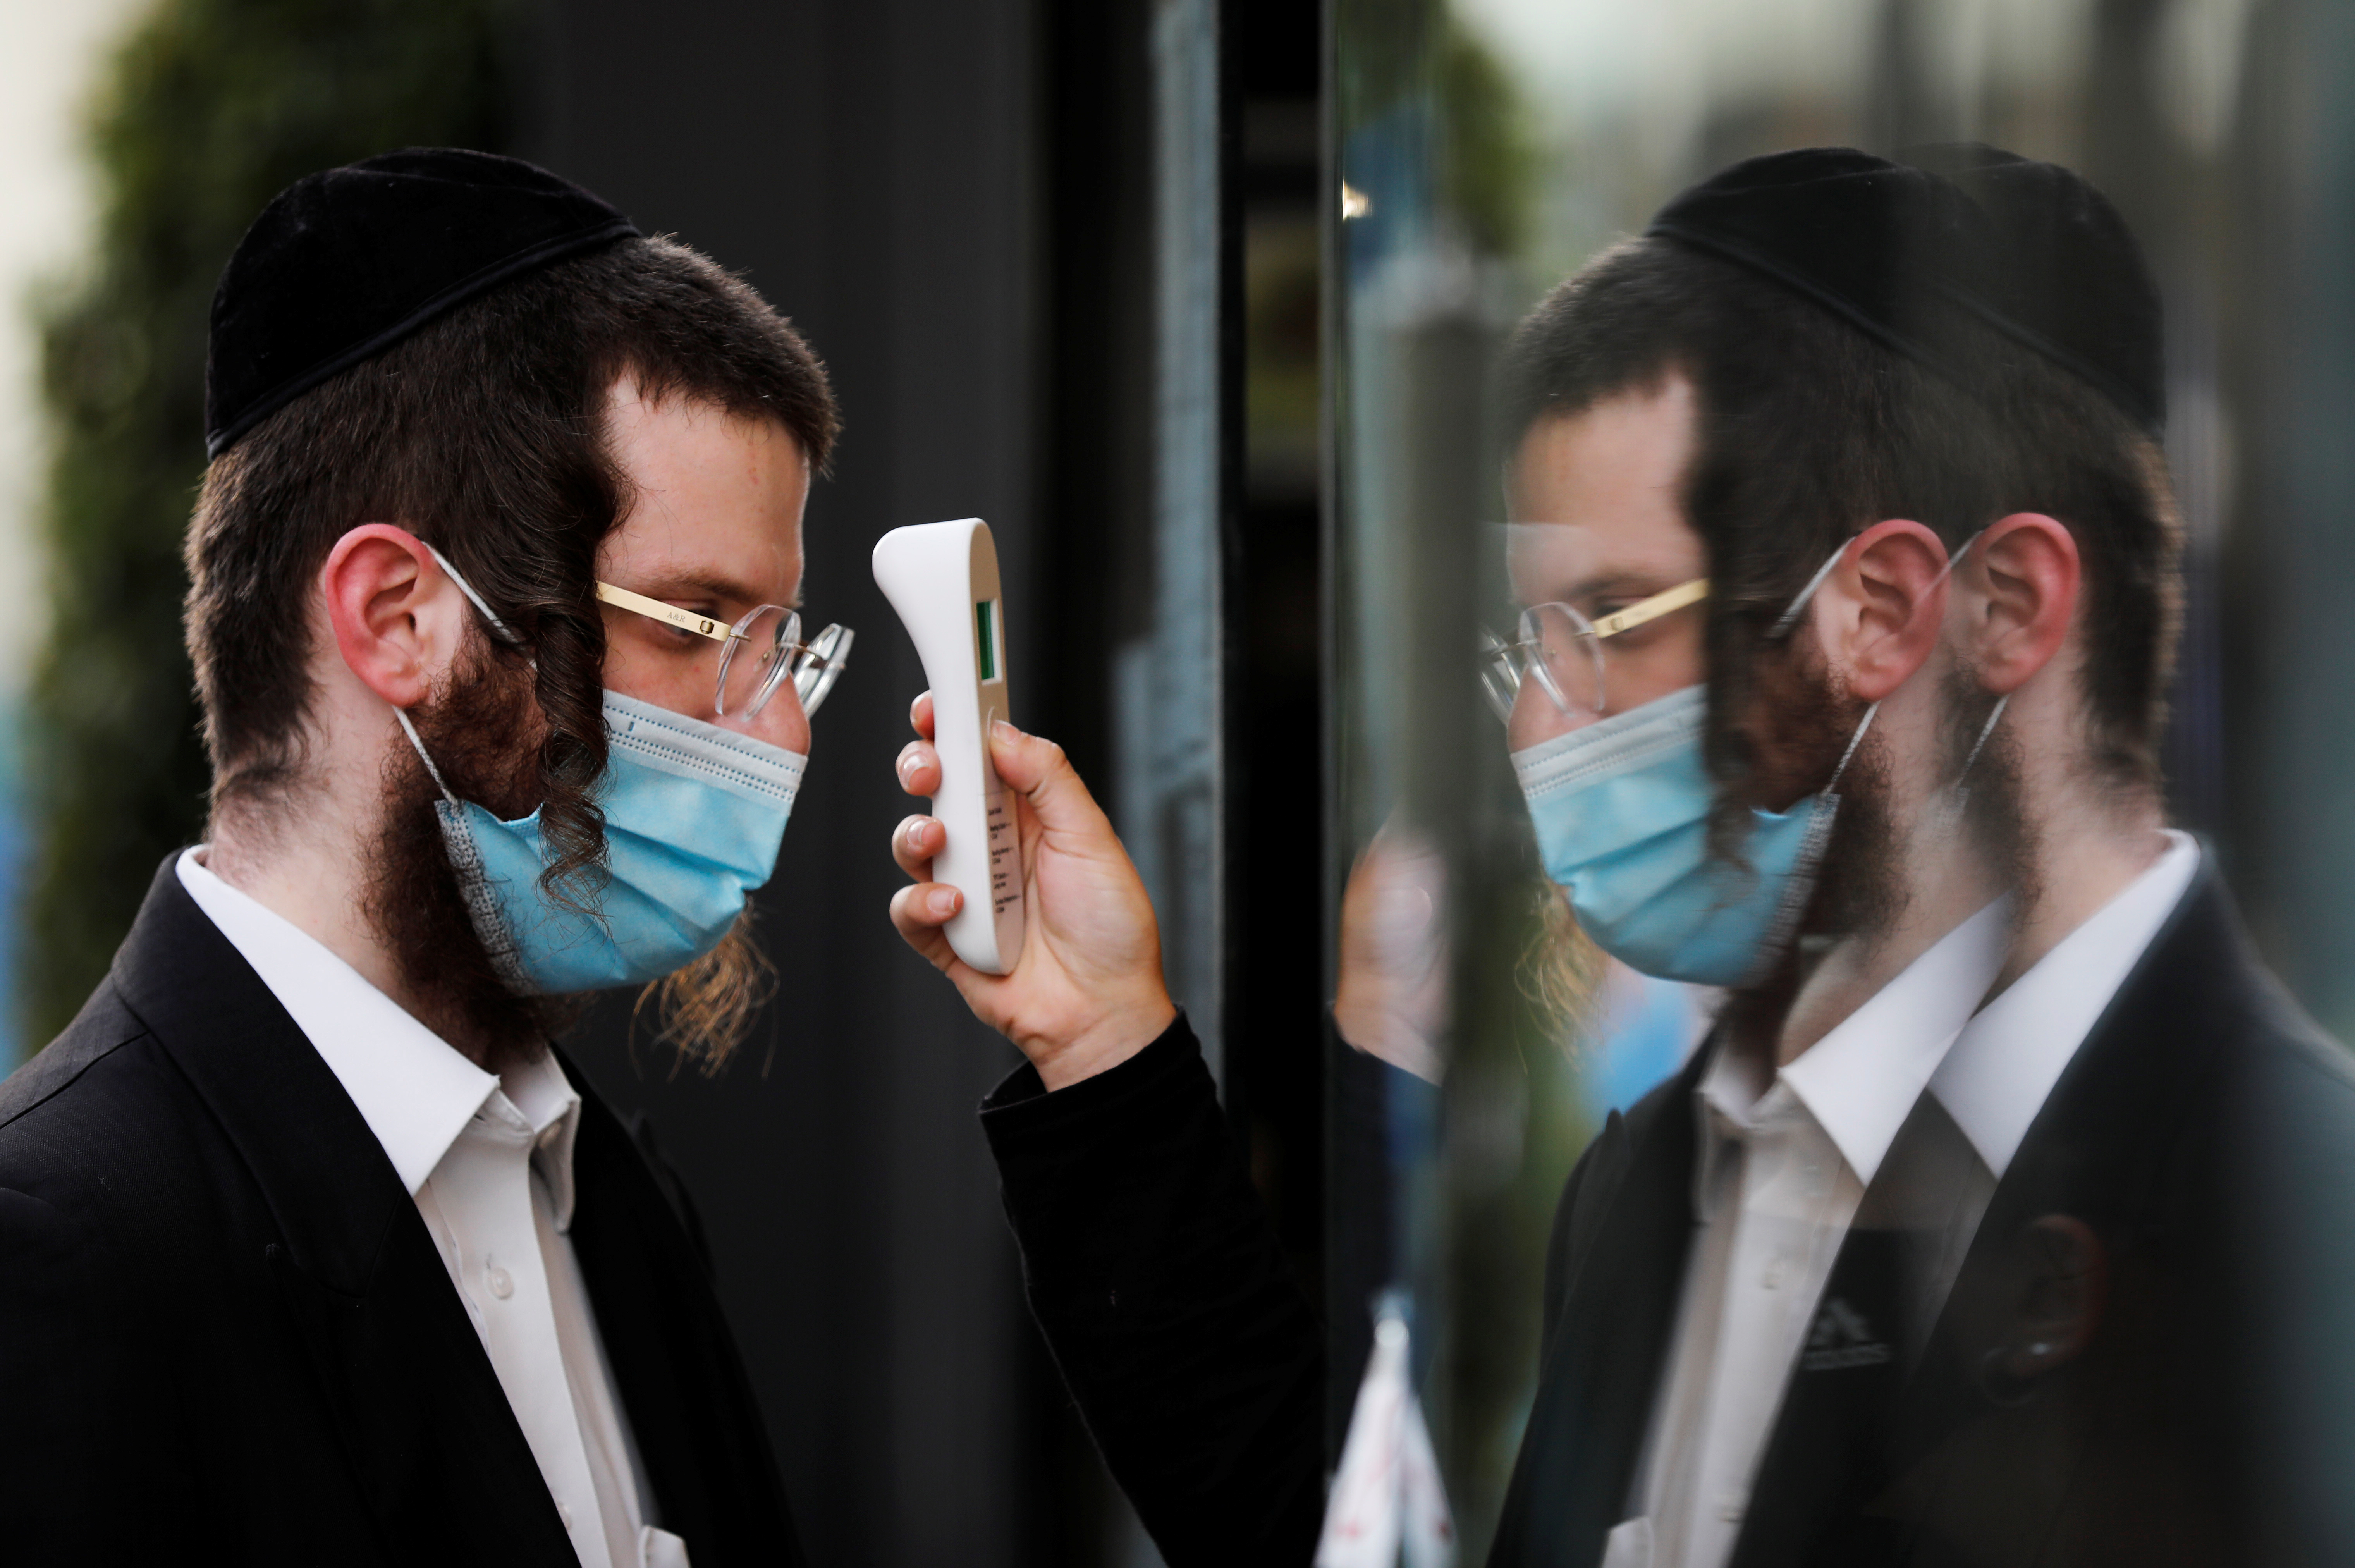 A visitor gets his temperature measured as he wears a face mask at a fashion shopping center in Ashdod, as restrictions over the coronavirus disease (COVID-19) ease around Israel, May 5, 2020. REUTERS/Amir Cohen